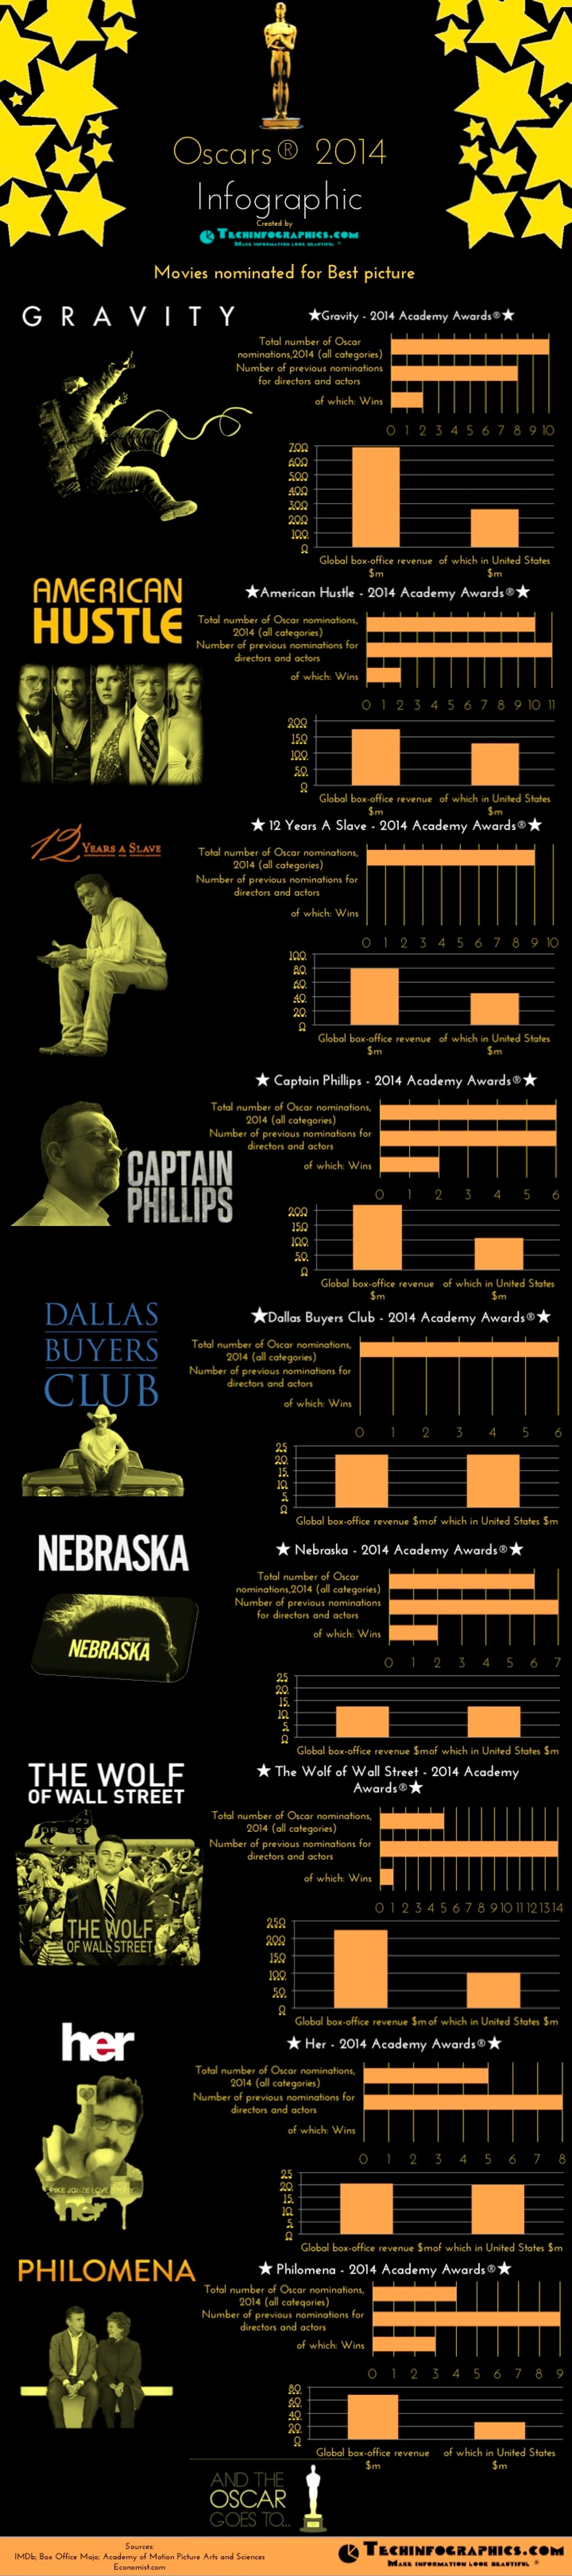 01 movie-academy-awards-2014-infographic--9-oscar-nominees-for-the-best-picture_52ee858c73491_w1500